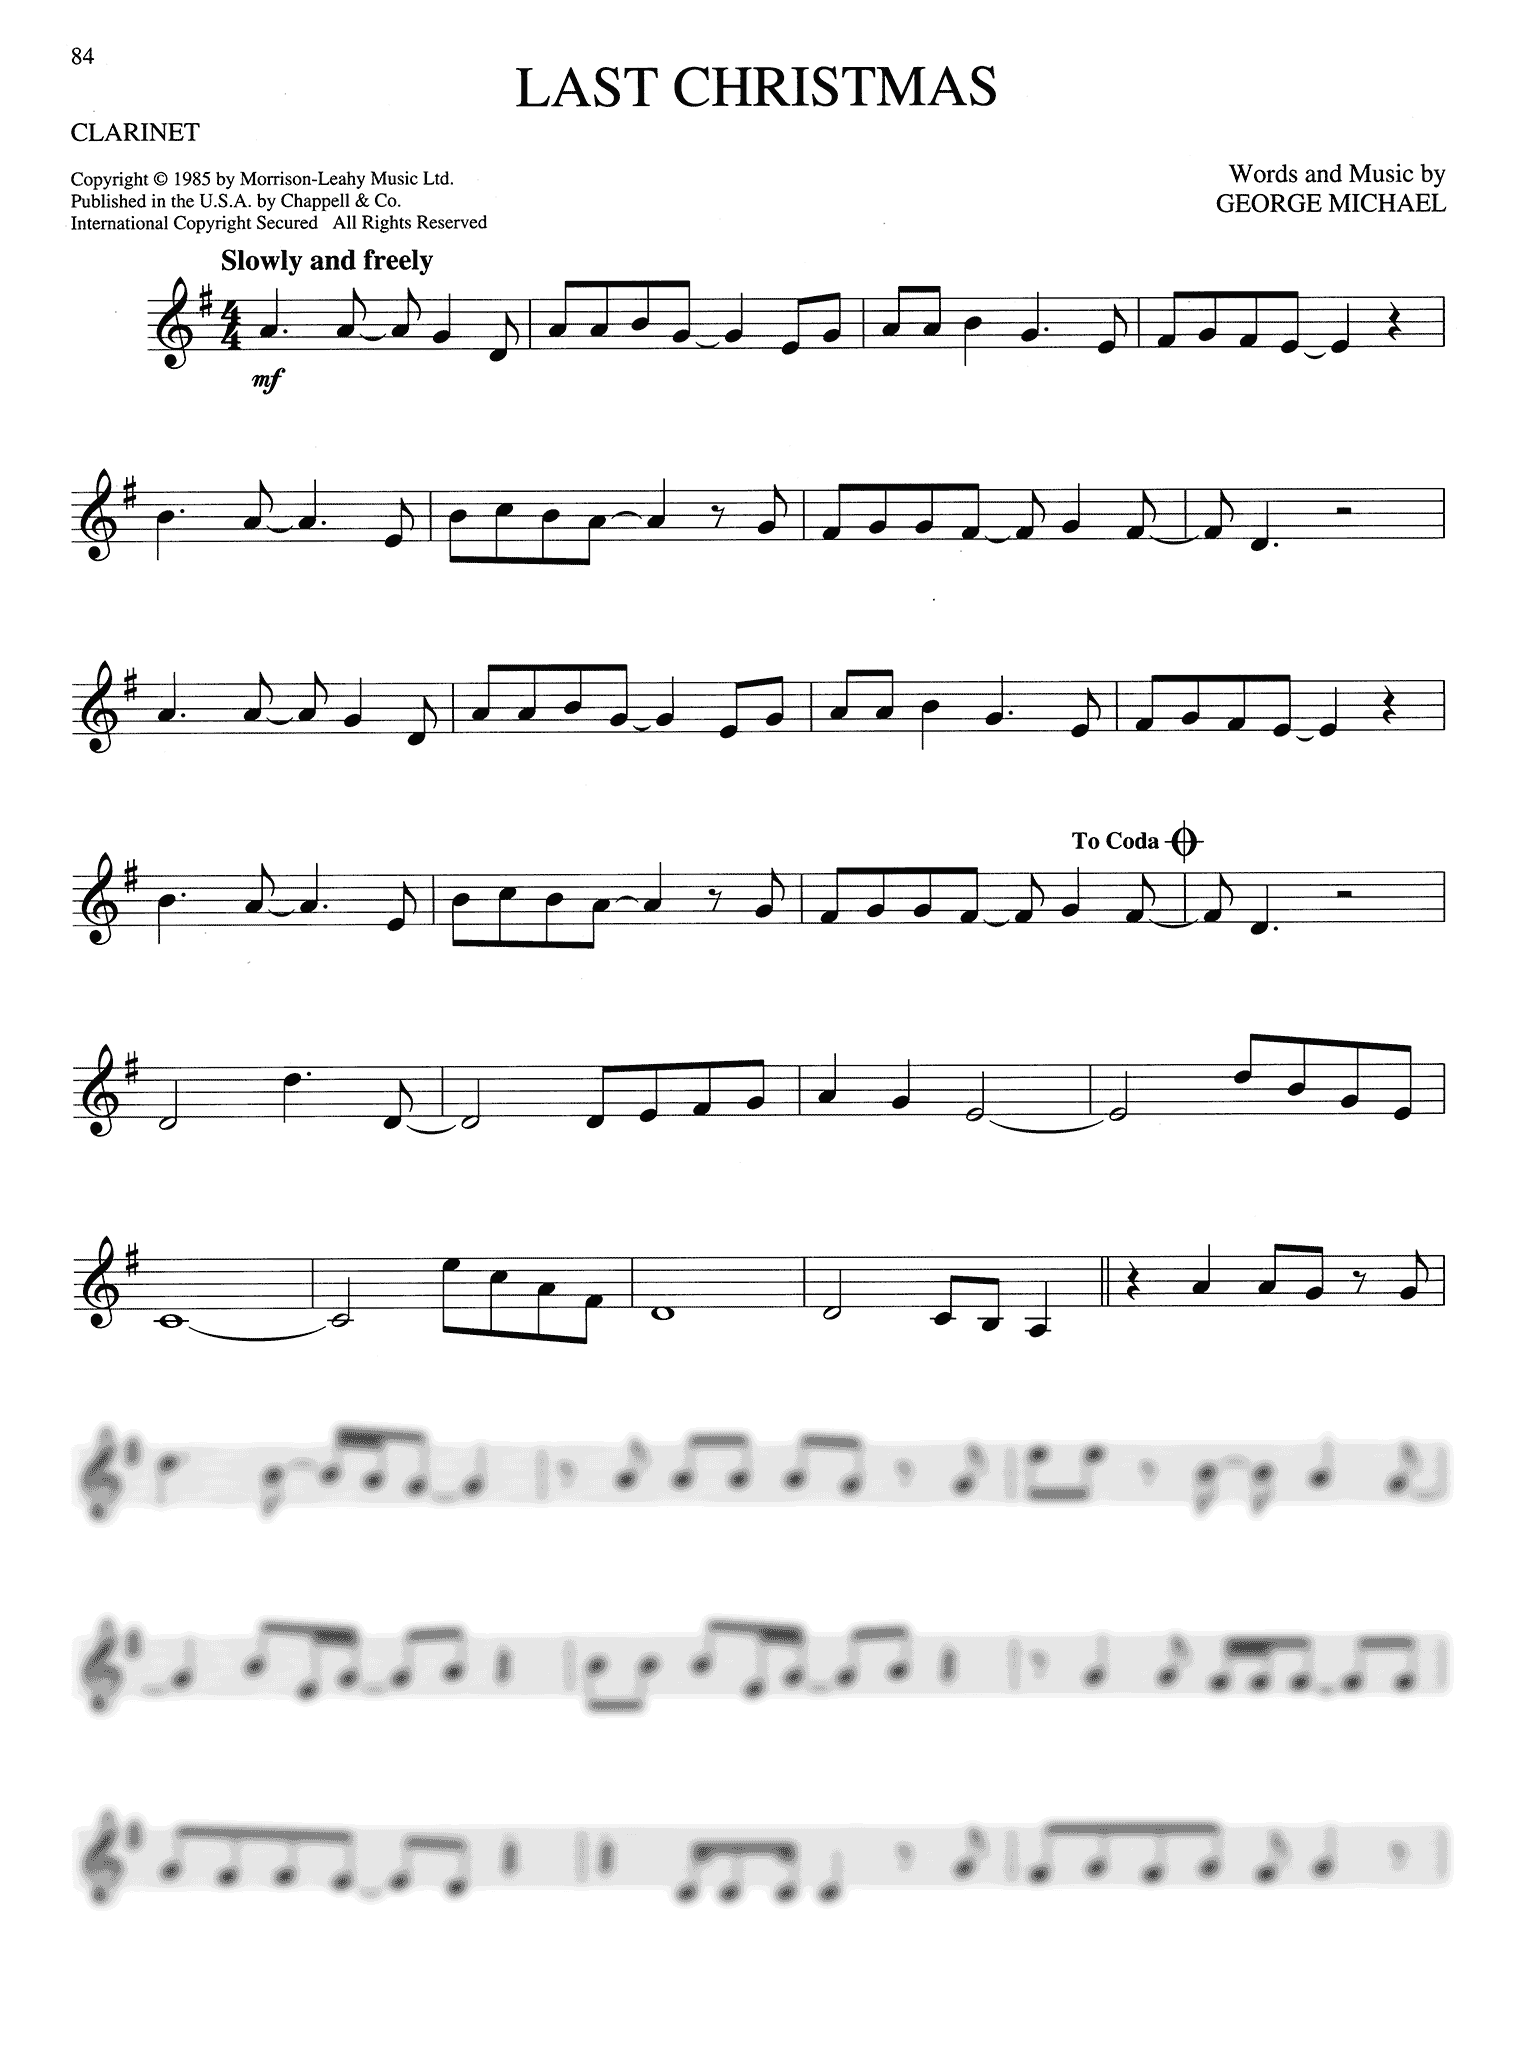 Big Book of Christmas Songs Clarinet Page 84